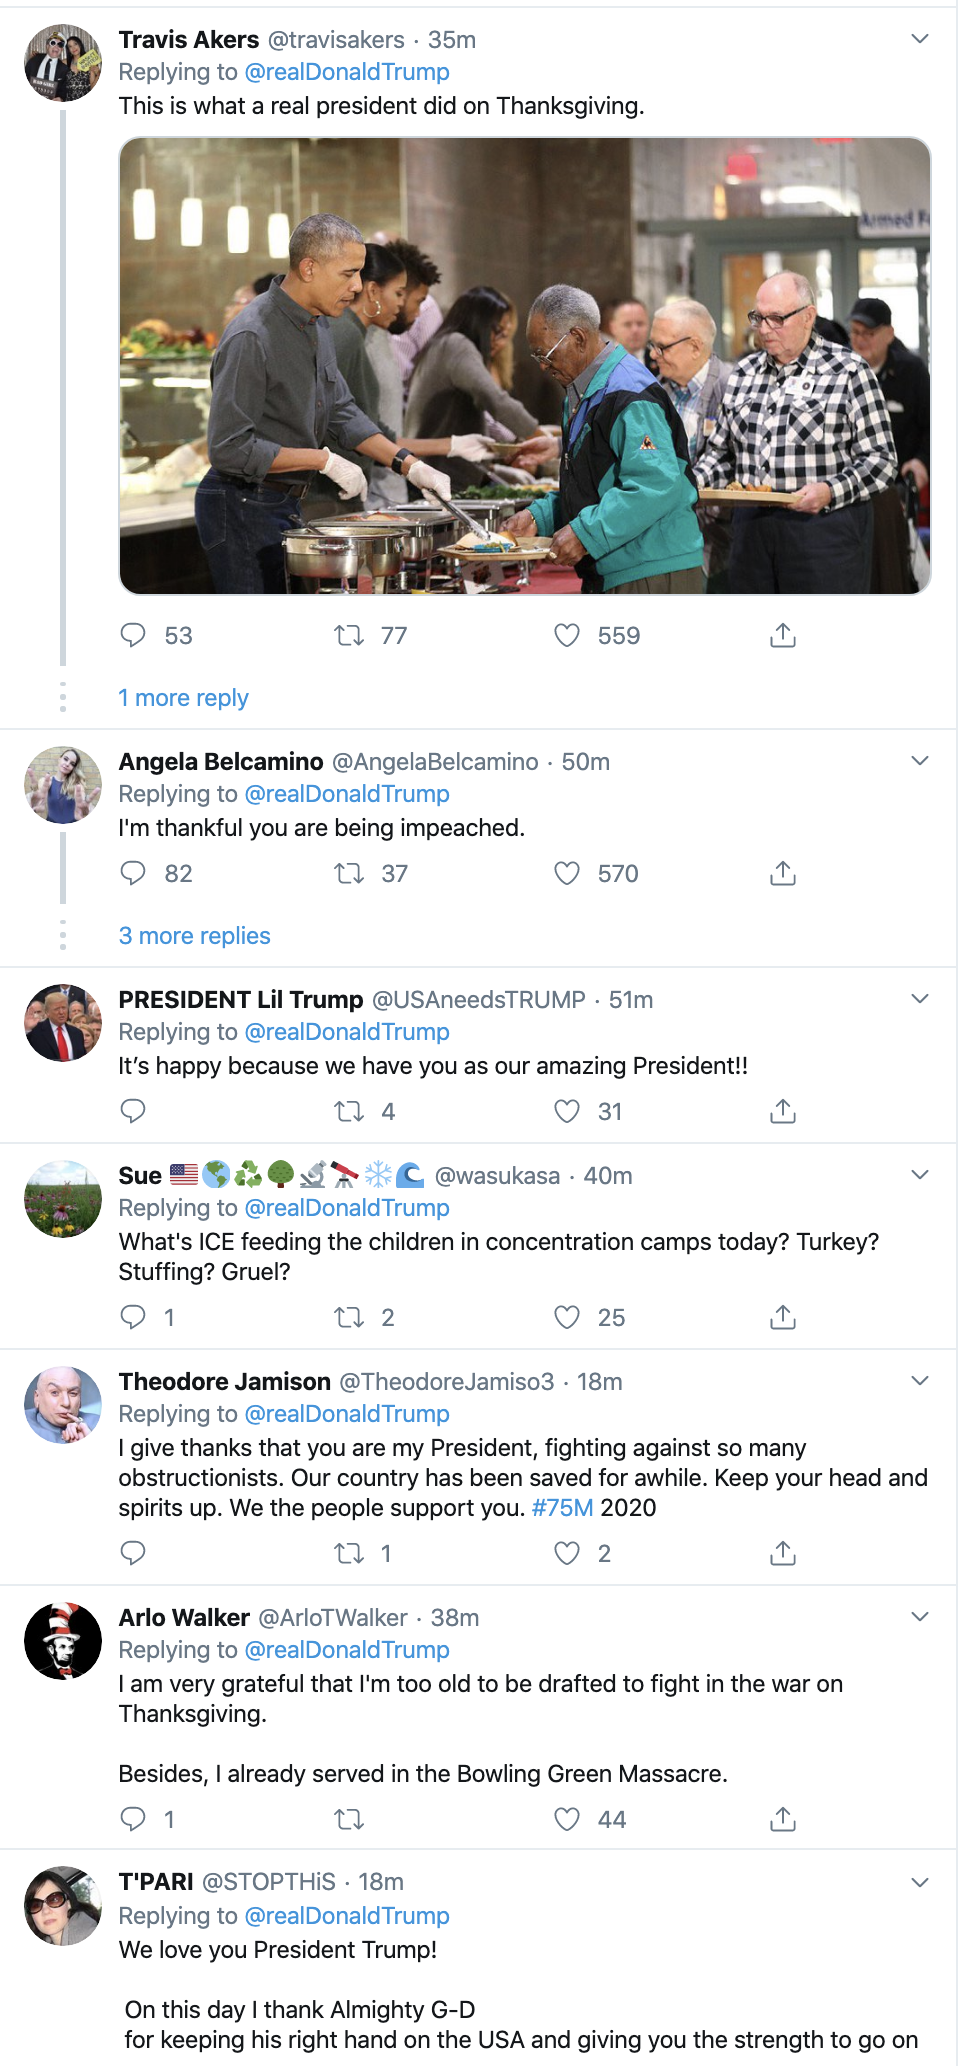 Screen-Shot-2019-11-28-at-8.13.52-AM Trump Tweets Phony Thanksgiving Message & Is Instantly Rejected Corruption Election 2020 Featured Impeachment Politics Top Stories